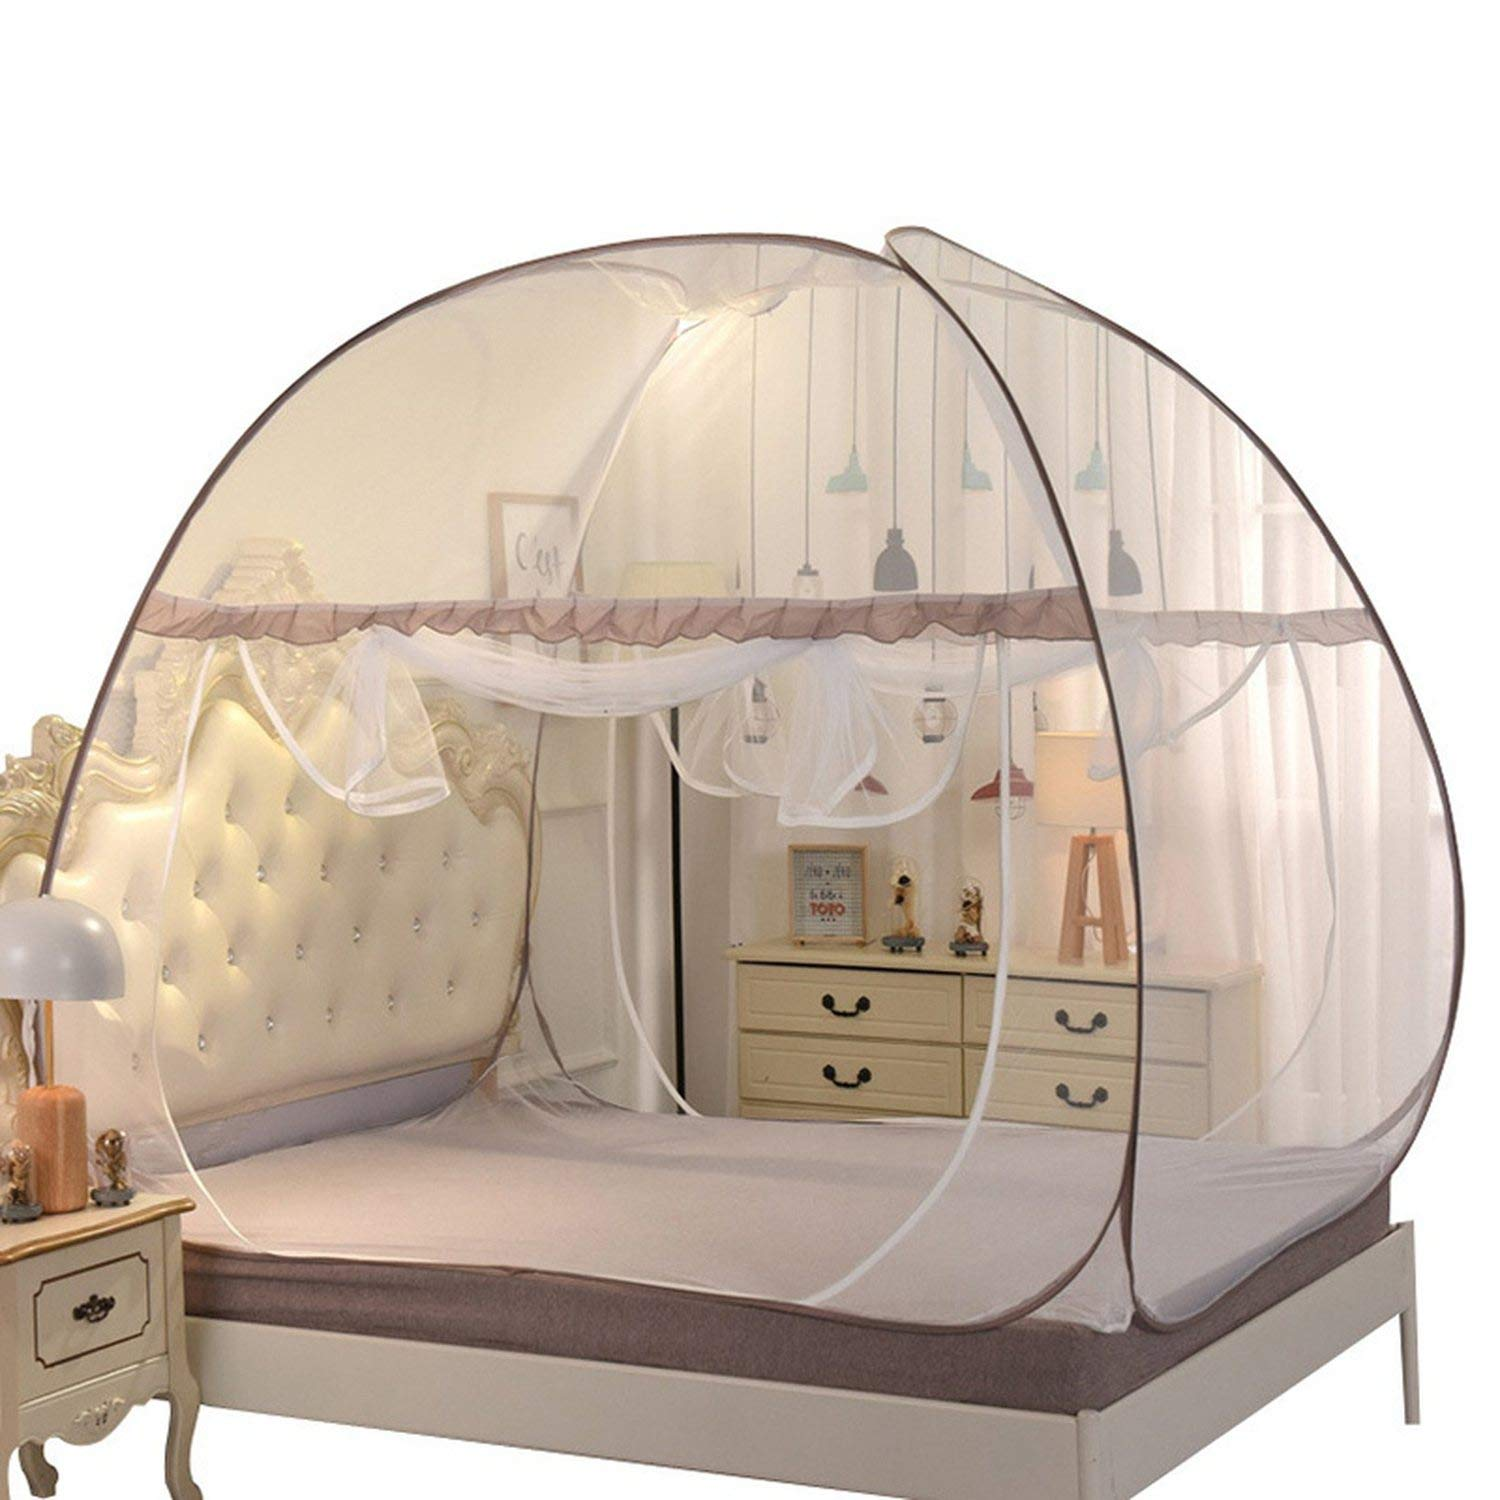 Portable Mongolian Yurt Mosquito Nets Installation Double Door Mosquito Nets Folding Outdoor Camping Mosquito Nets,Coffee,S